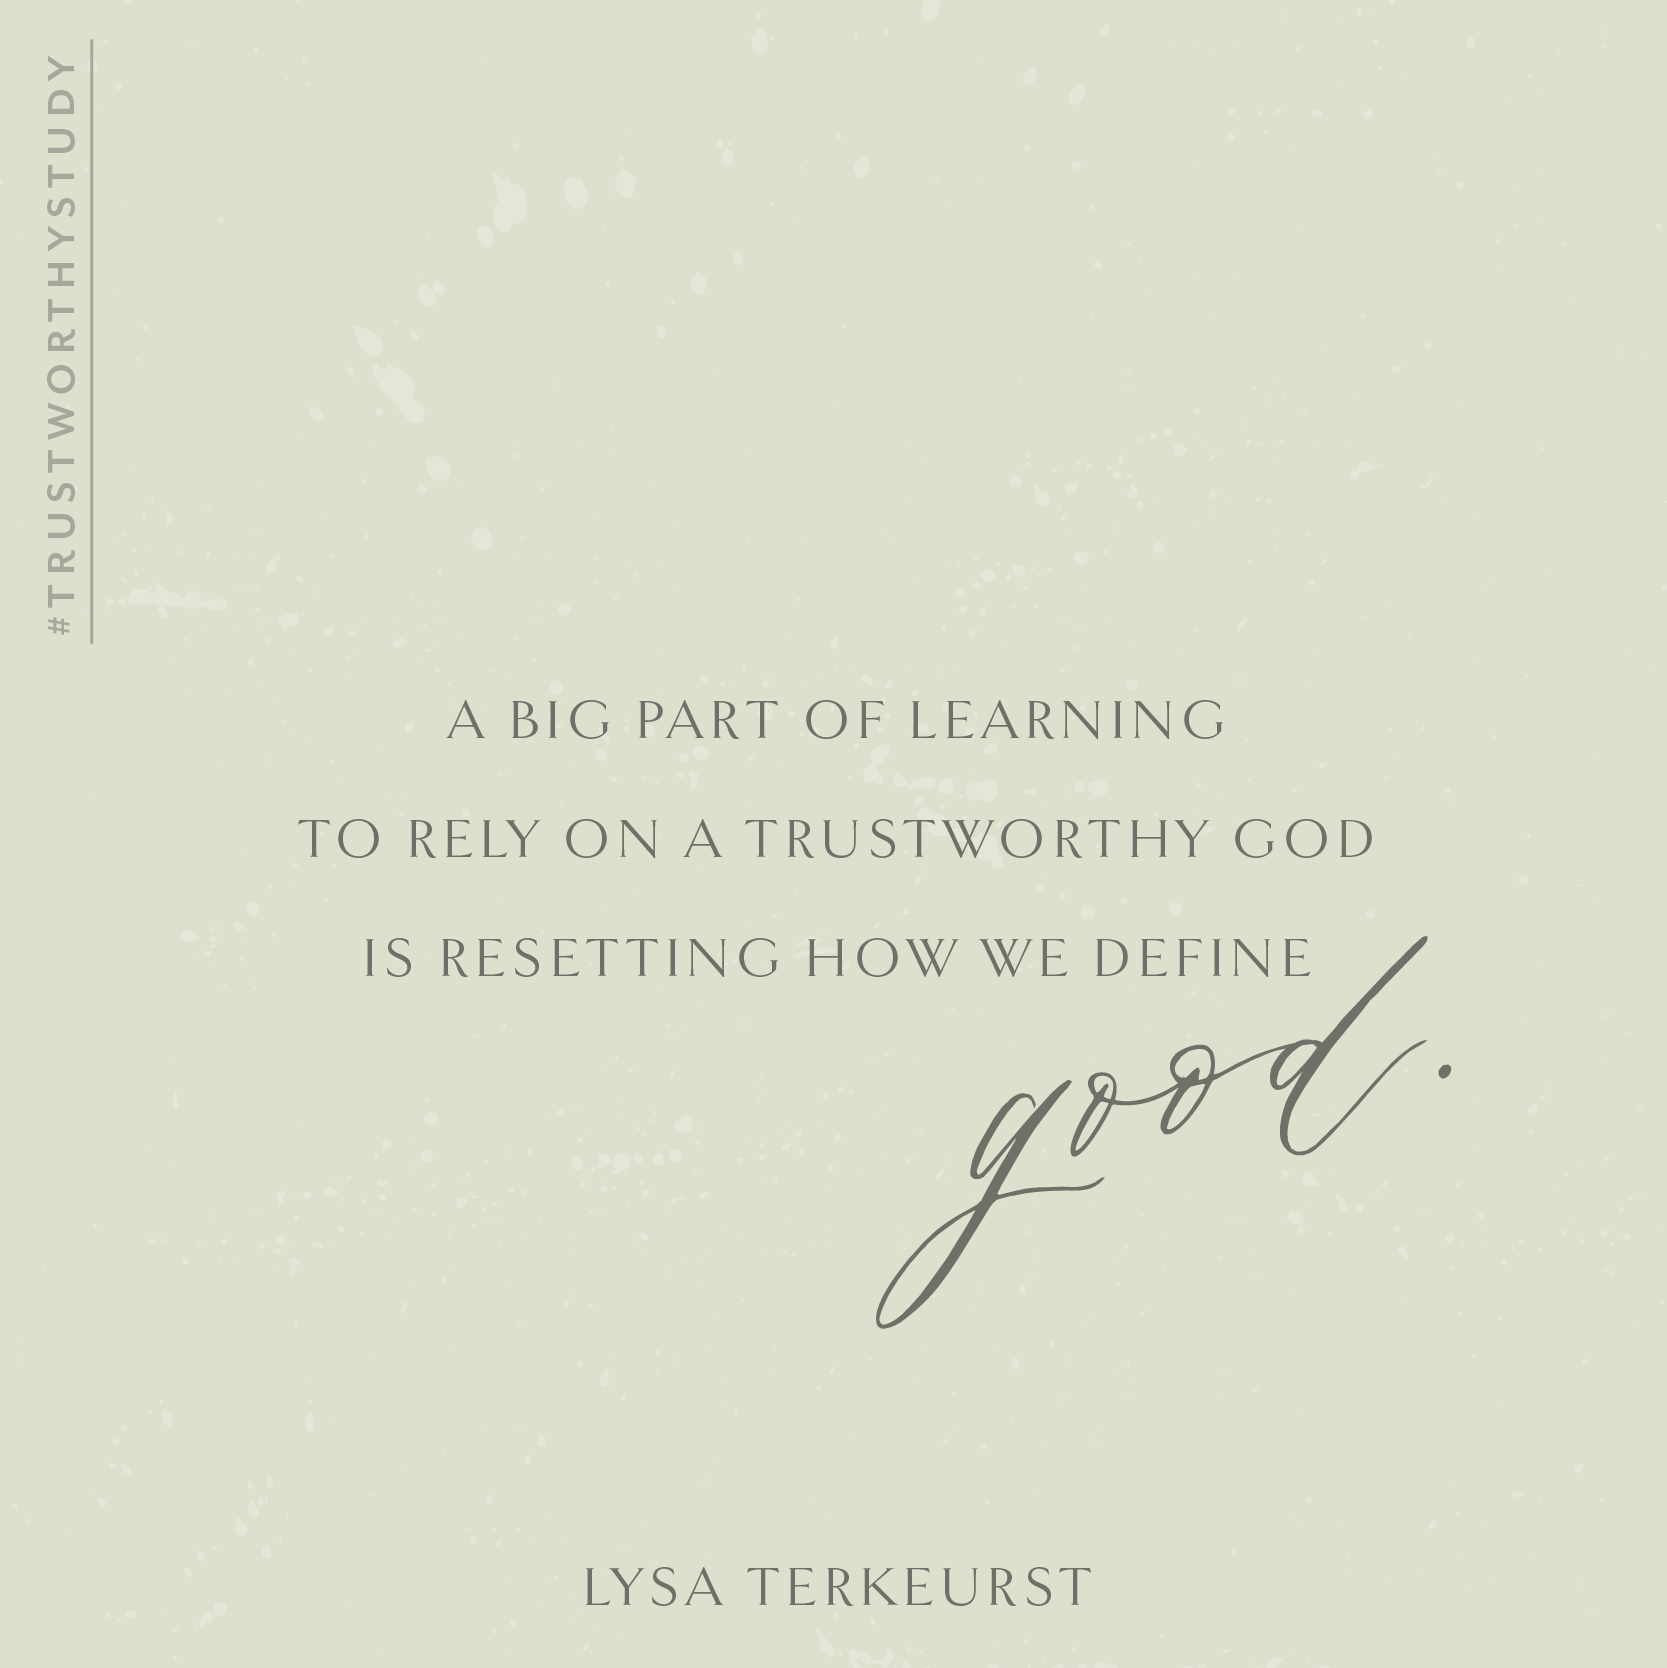 """""""A big part of learning to rely on a trustworthy God is resetting how we define good."""" - Lysa TerKeurst  #TrustworthyStudy 